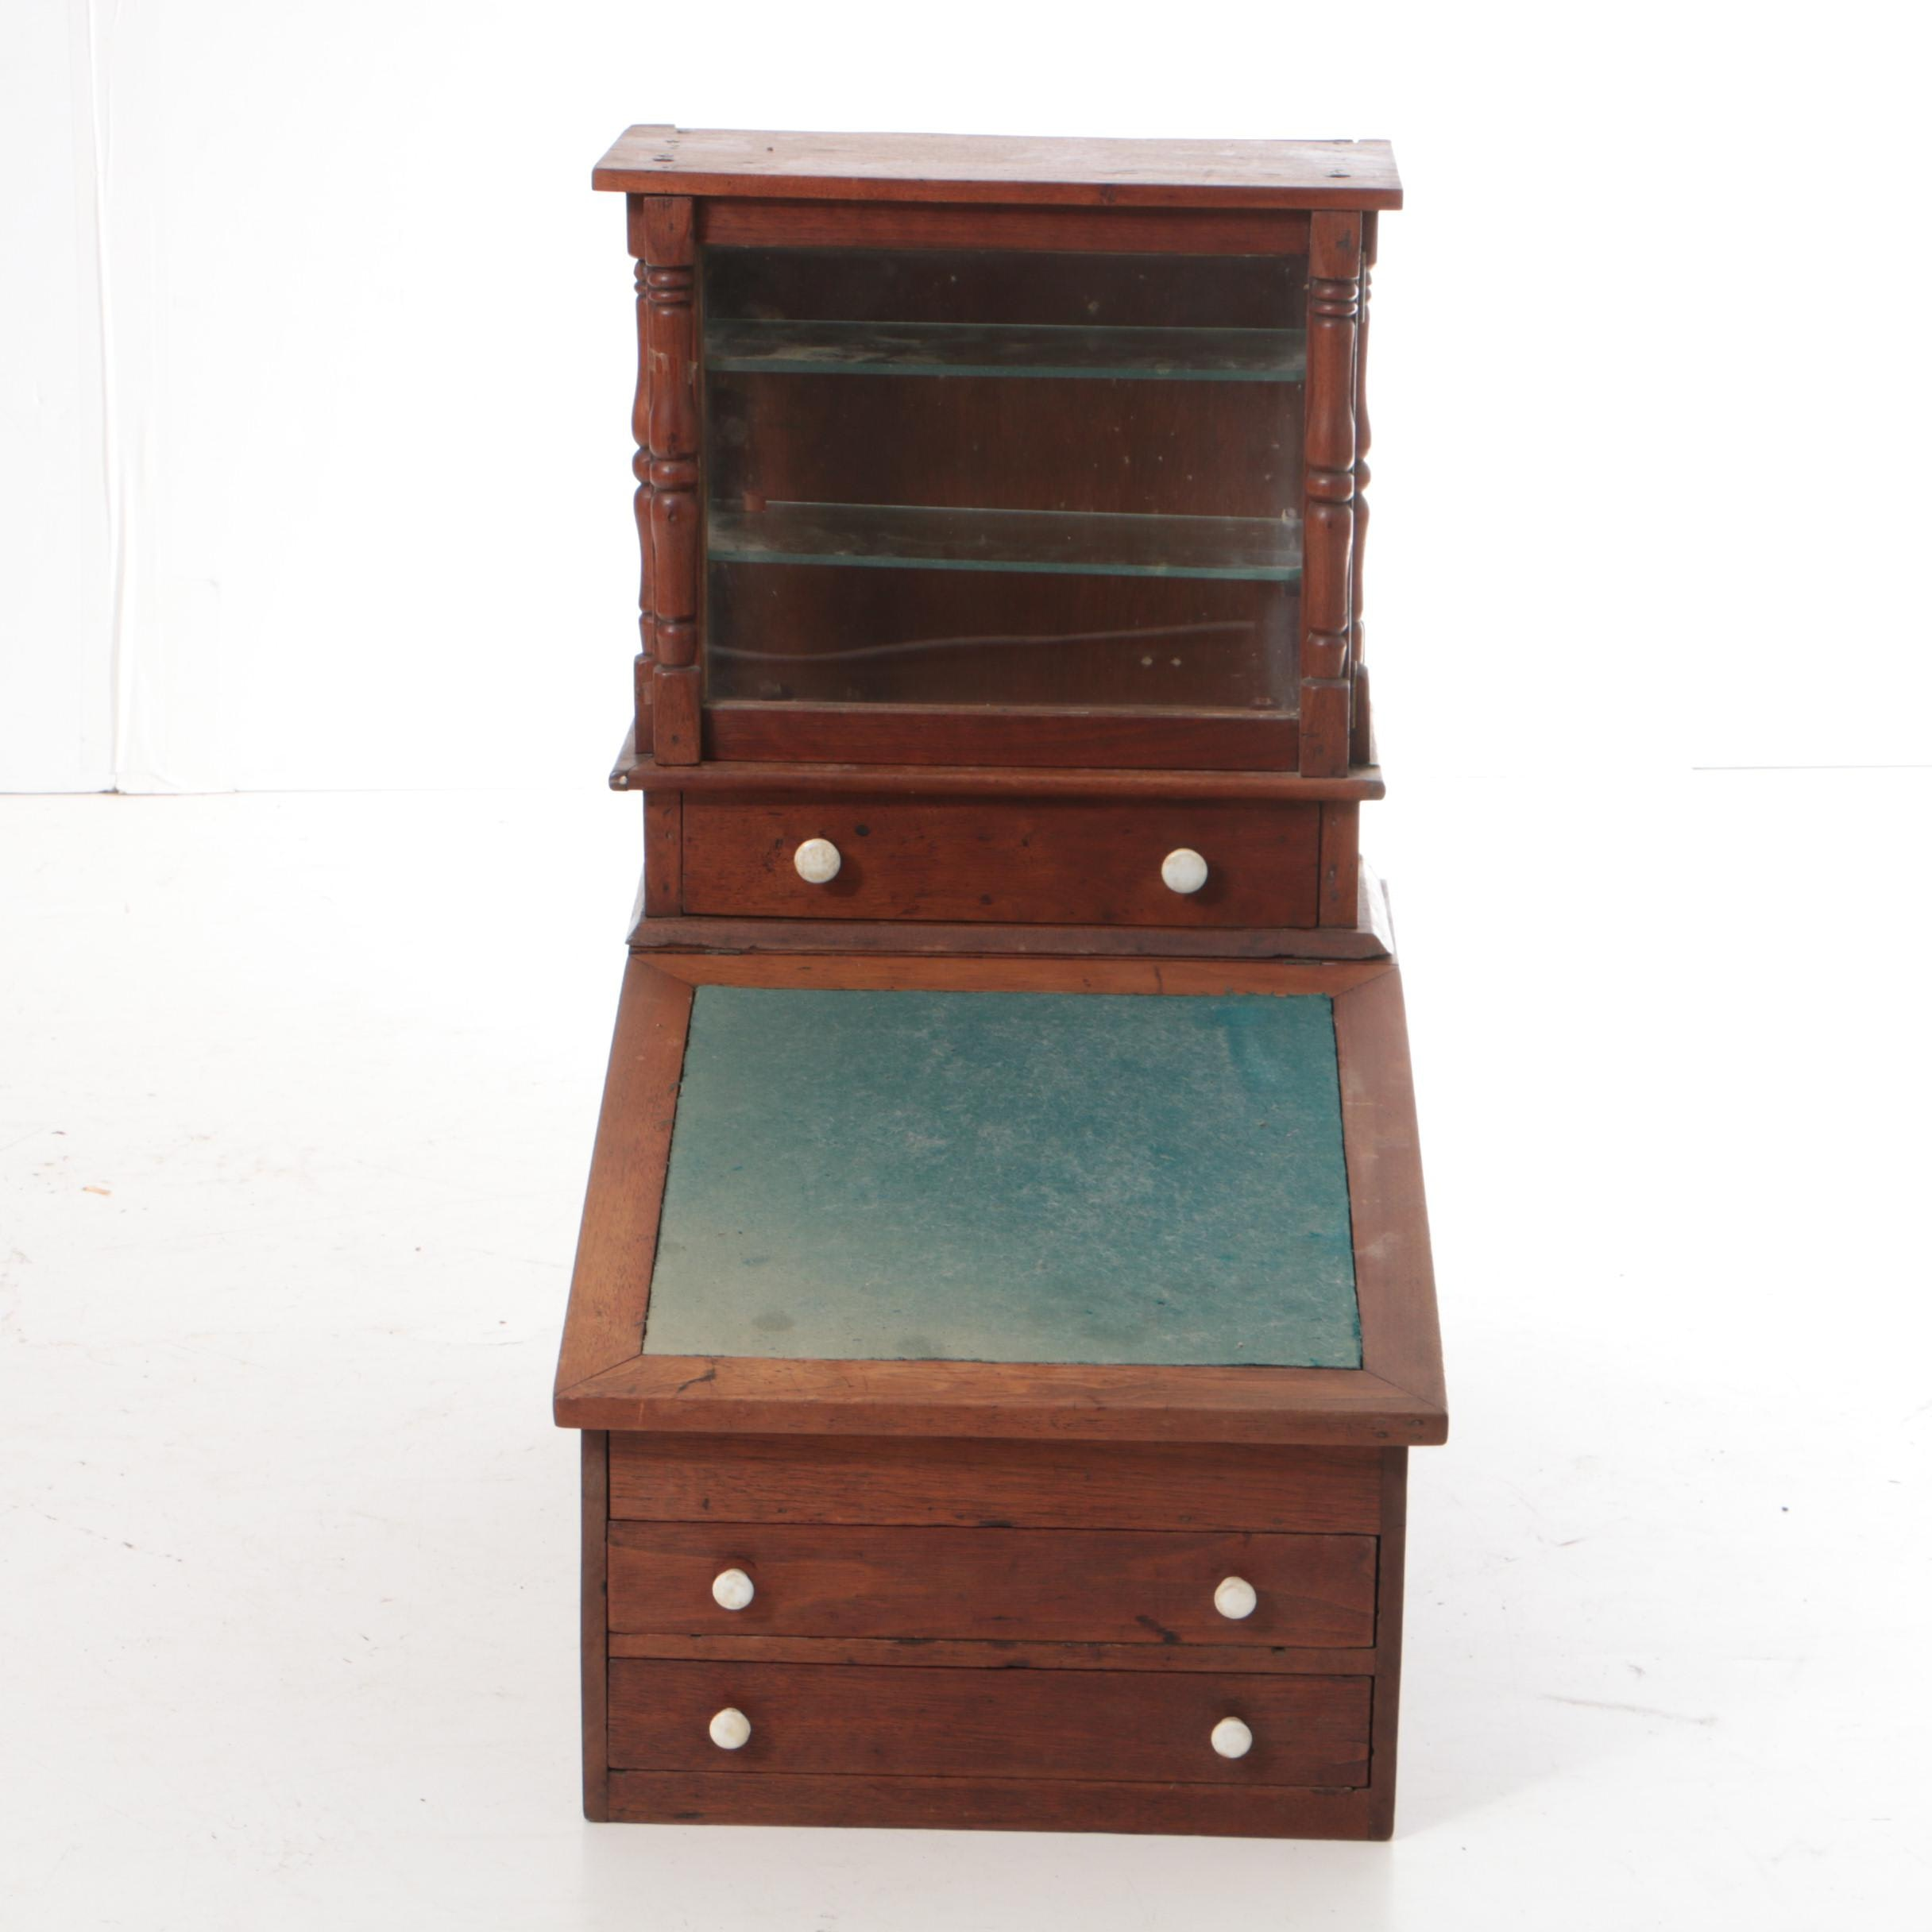 Antique Walnut Tabletop Desk with Gallery Cabinet